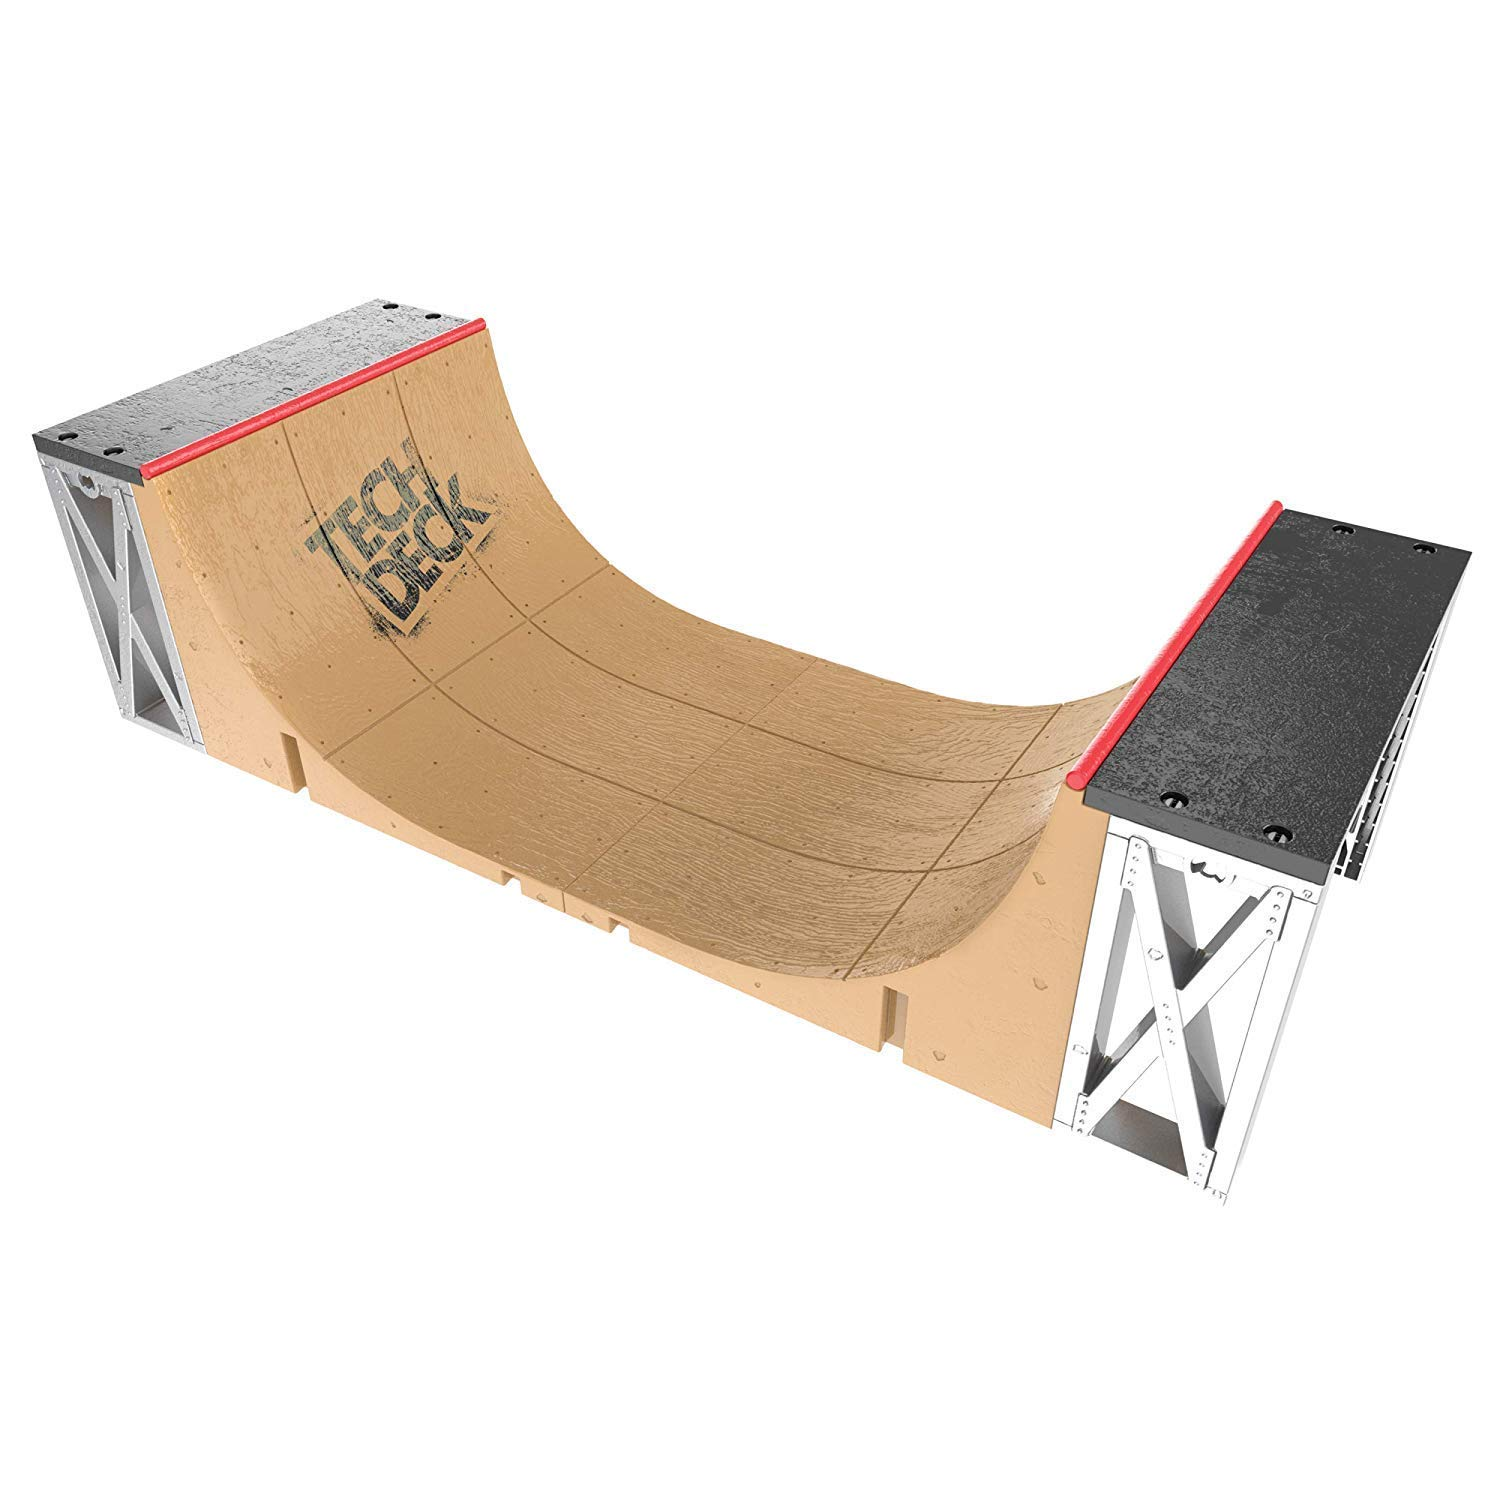 Tech Deck - Ultimate Half-Pipe Ramp and Exclusive Primitive Pro Model Finger Board, for Ages 6 and Up by Tech Deck (Image #6)